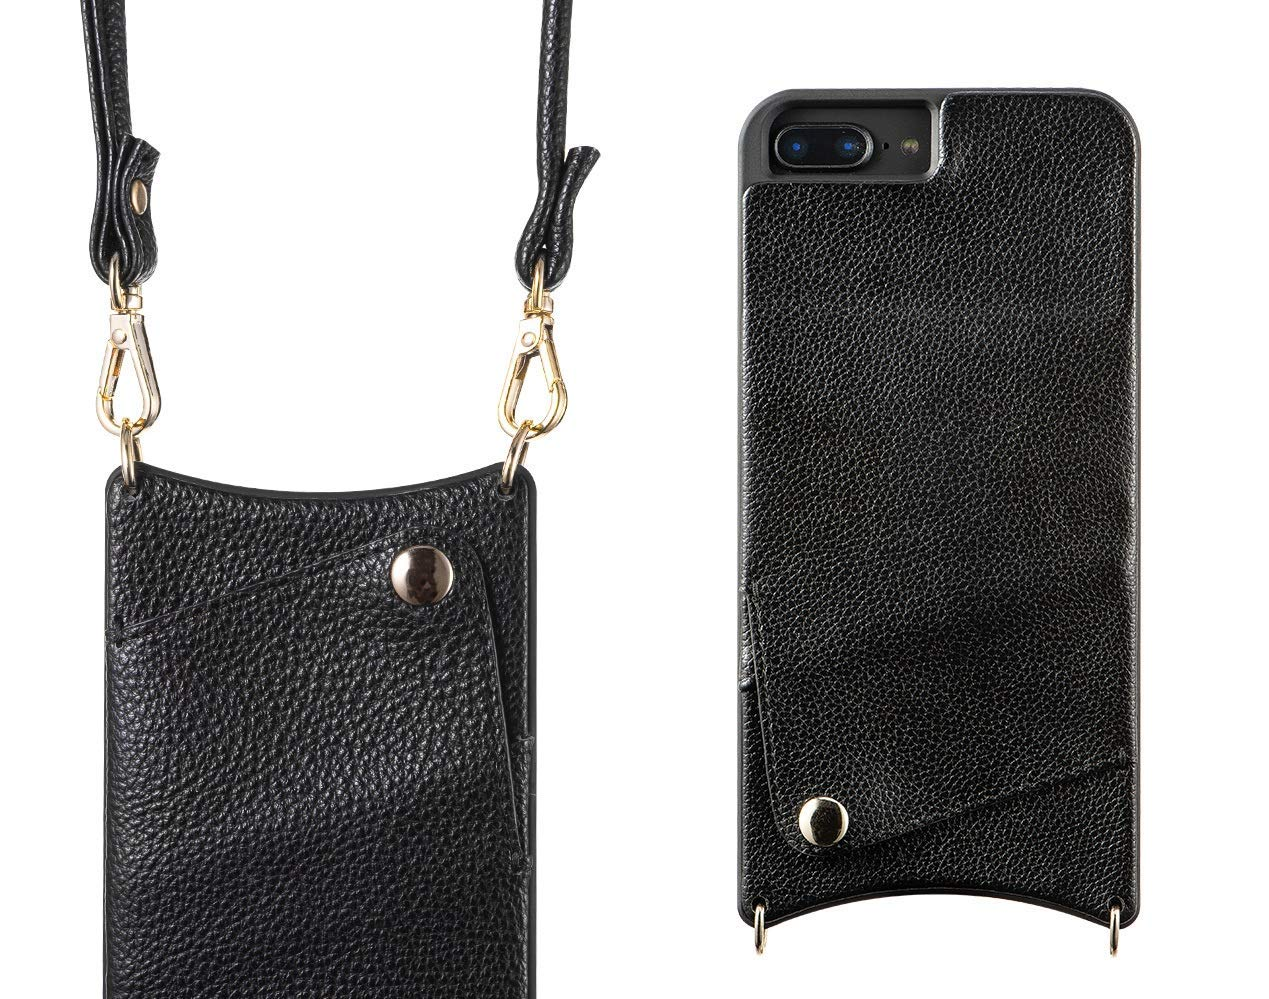 buy popular fa63f 5ae1a iPhone Case with Strap for iPhone 6/7/8 - Crossbody Phone Case Wallet and  iPhone Strap Phone Purse with Shoulder Strap Cross body iPhone Purse Case  ...